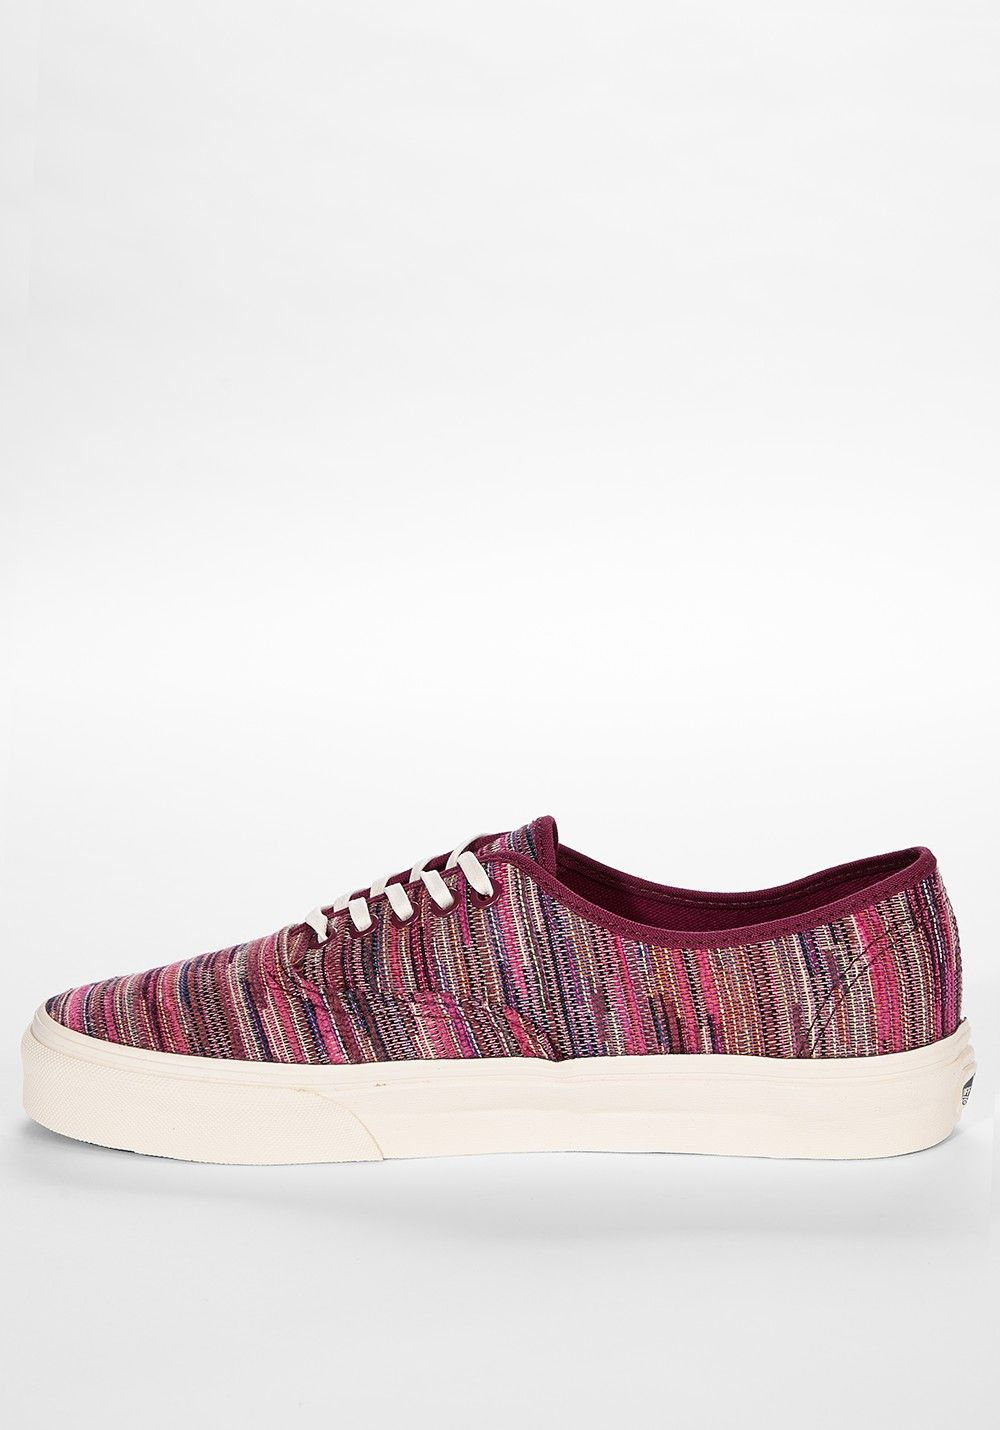 VANS Authentic CA Italian Weave Vans | frontlineshop.com